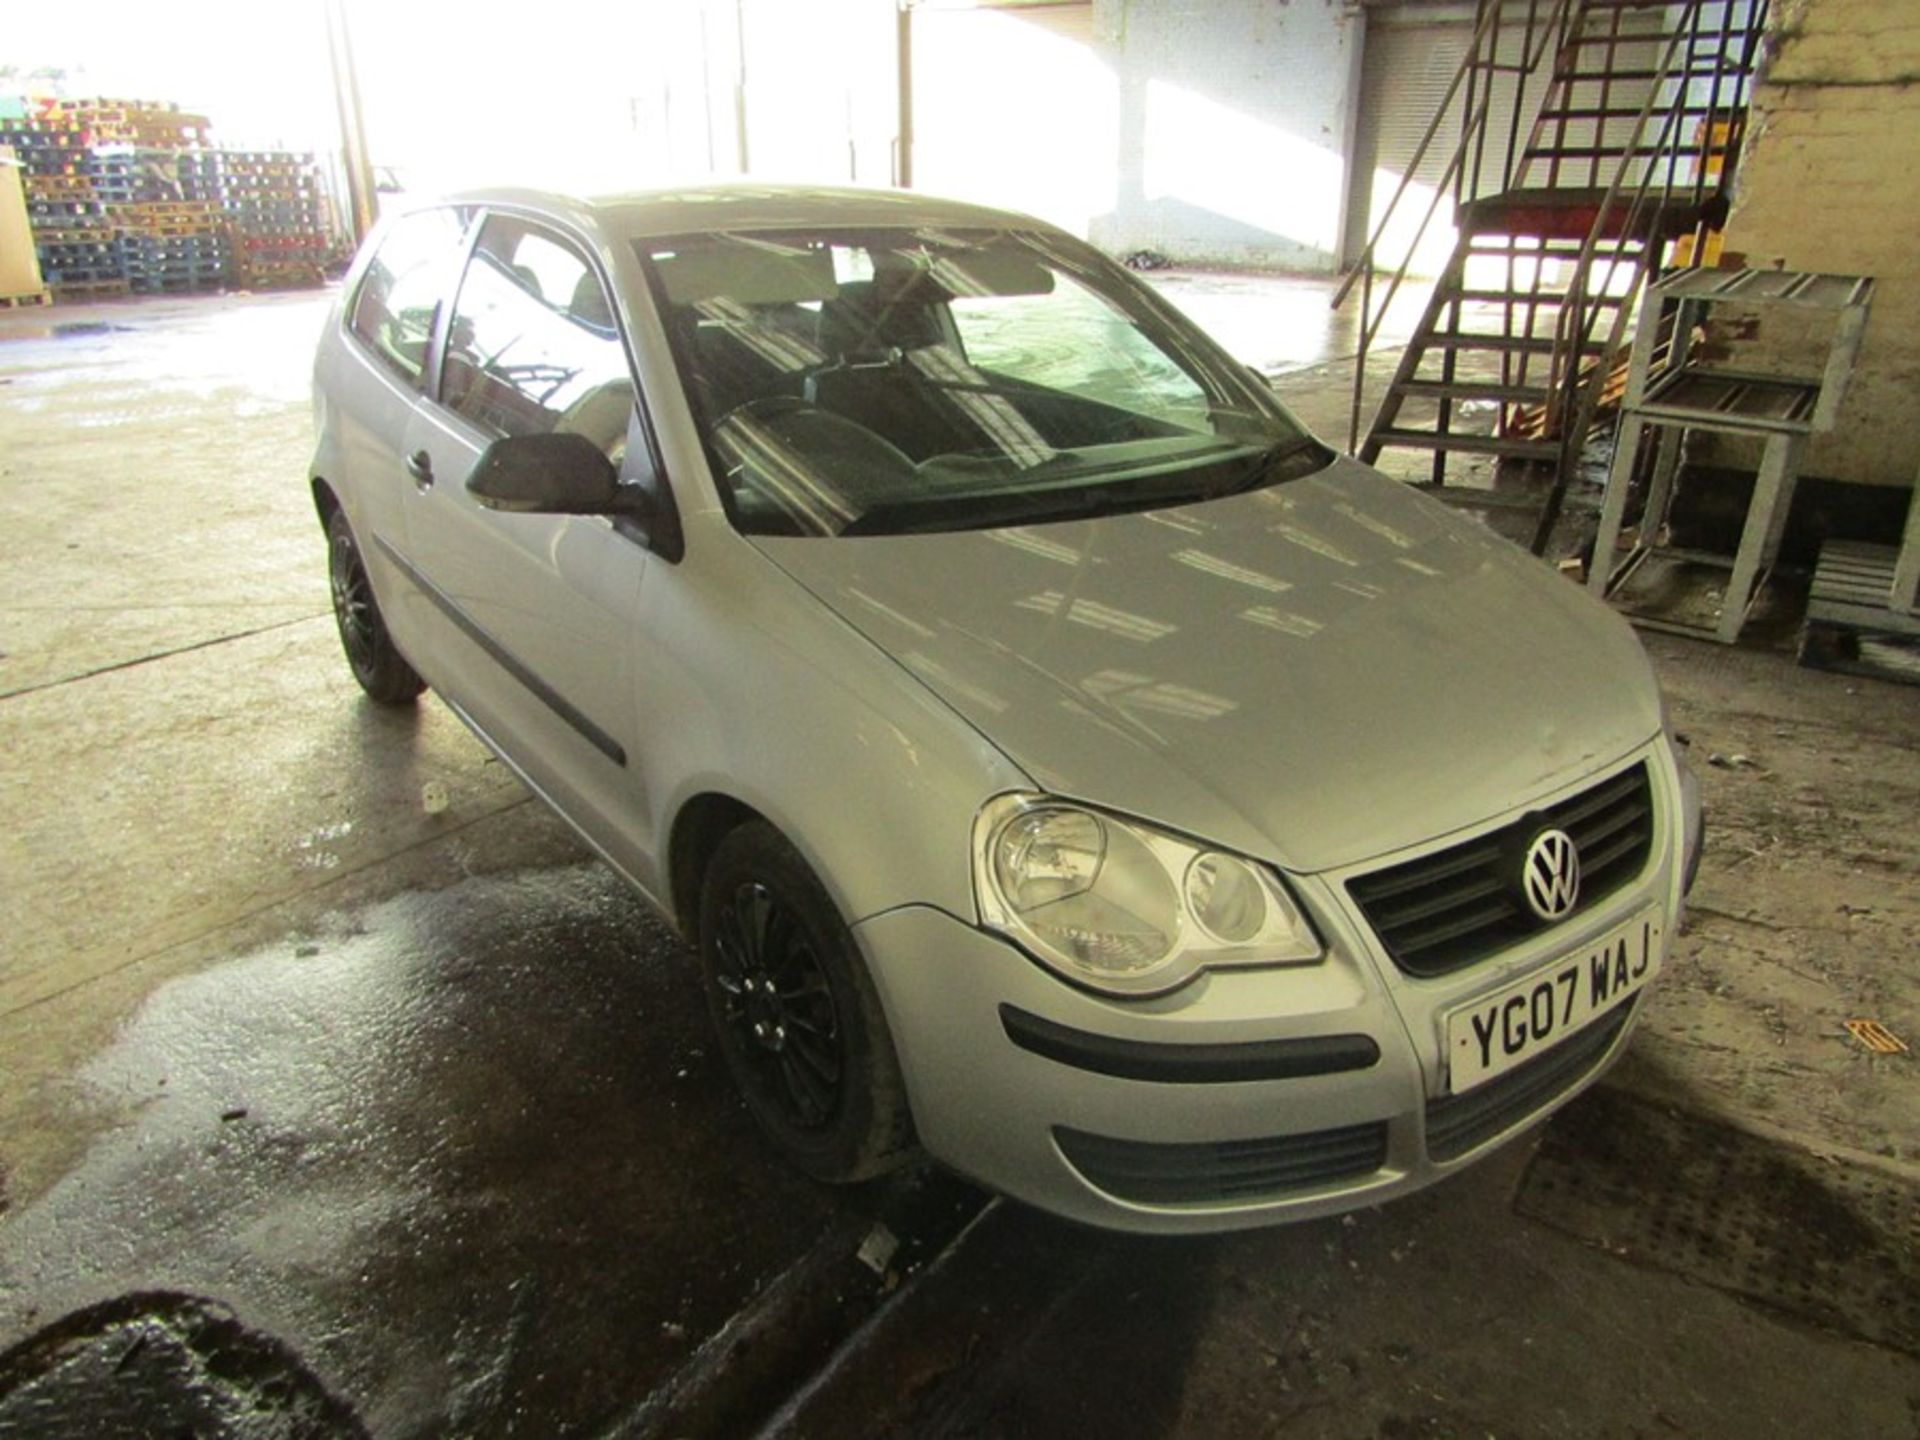 2007 Volkswagen Polo 1.2L hatchback, starts and drives 70,294 Miles Failed MOT 12/09/2020 due to;